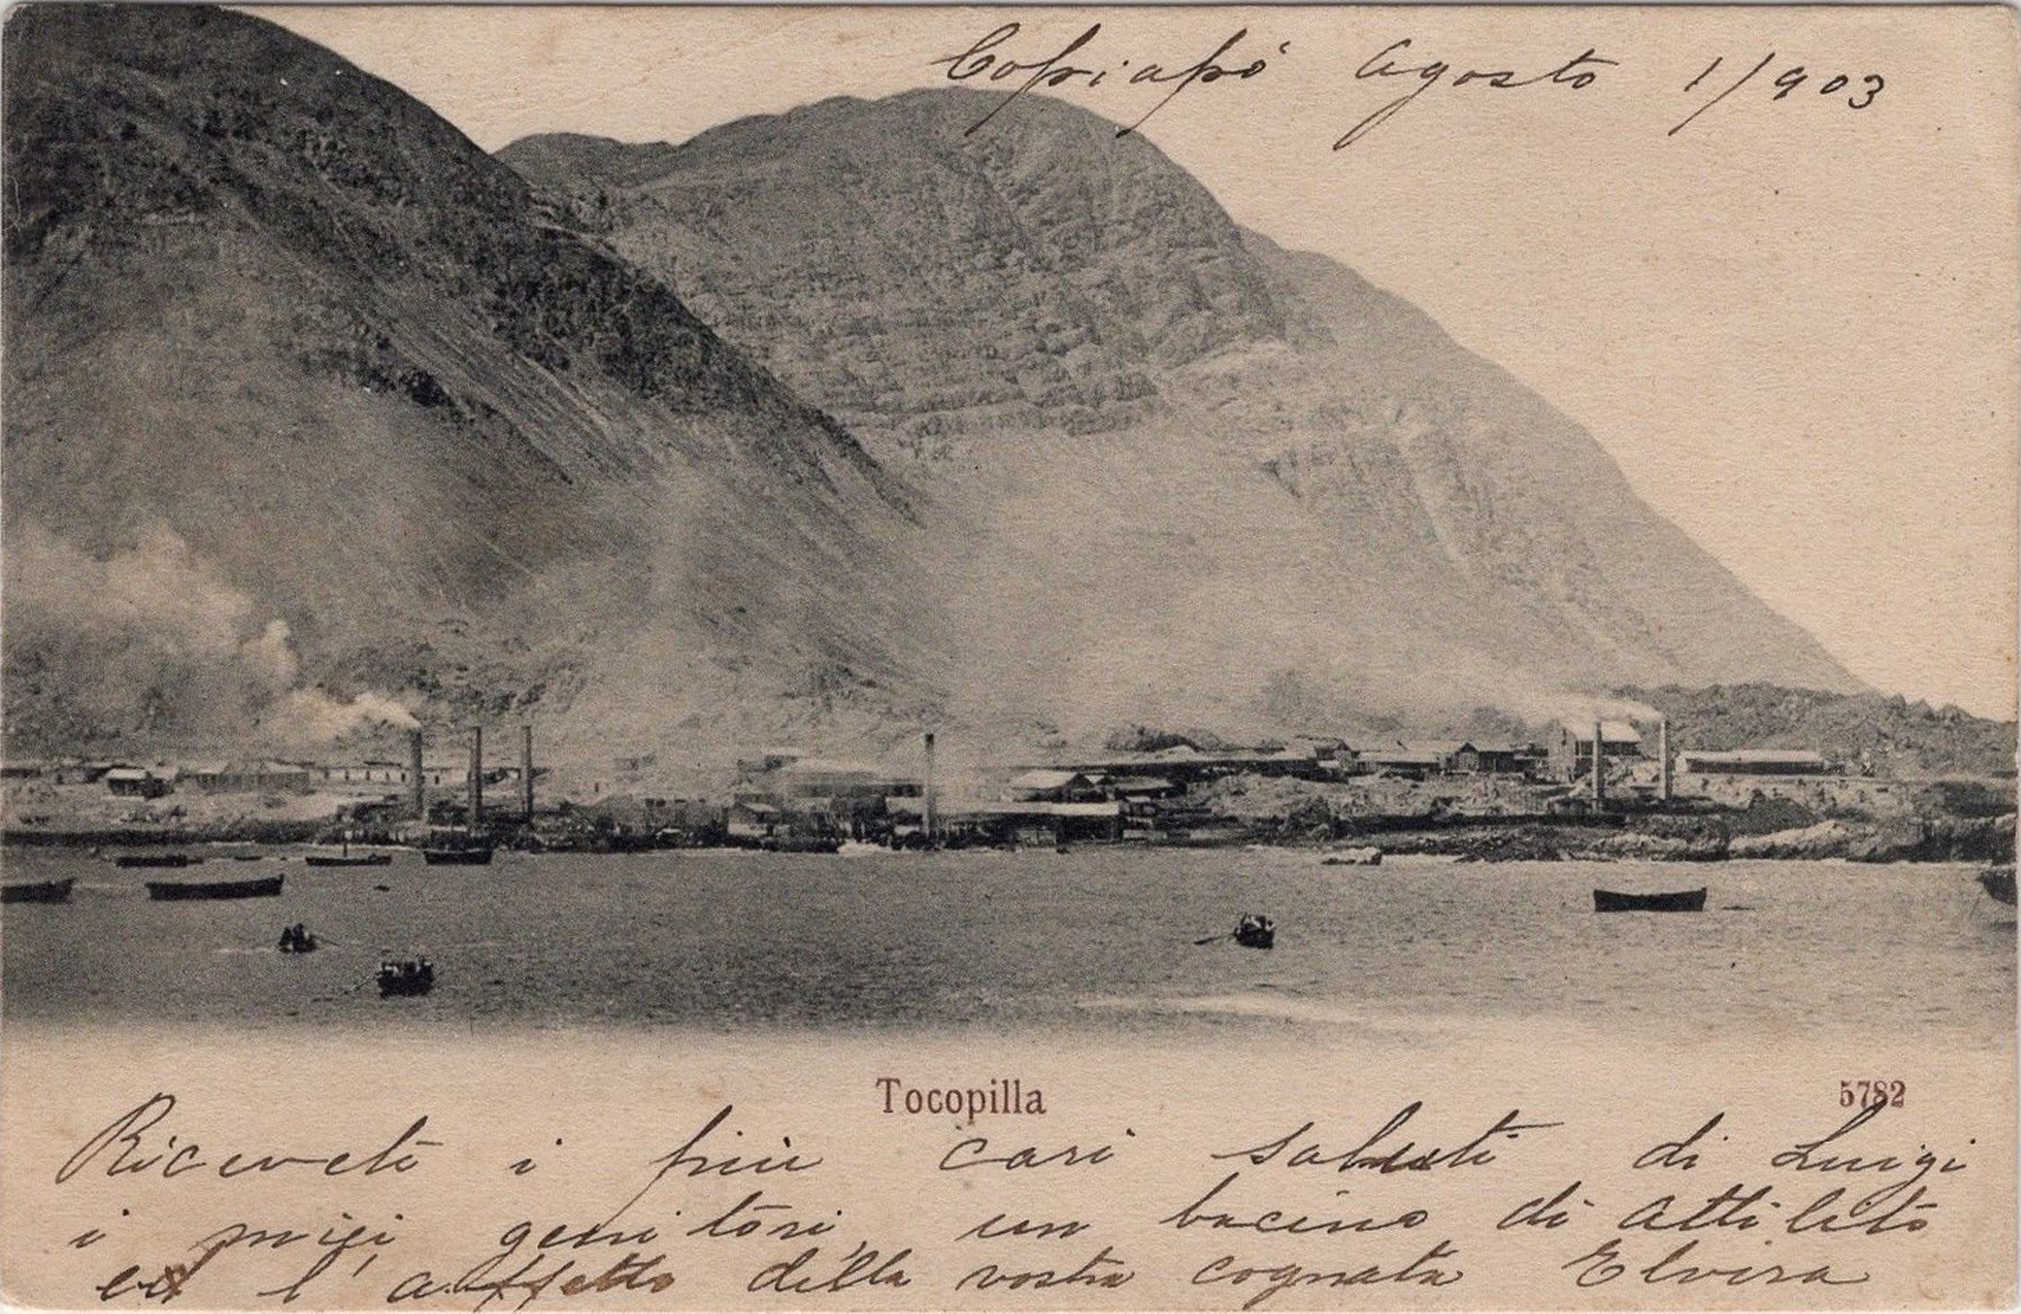 Enterreno - Fotos históricas de chile - fotos antiguas de Chile - Tocopilla desde el mar en 1900